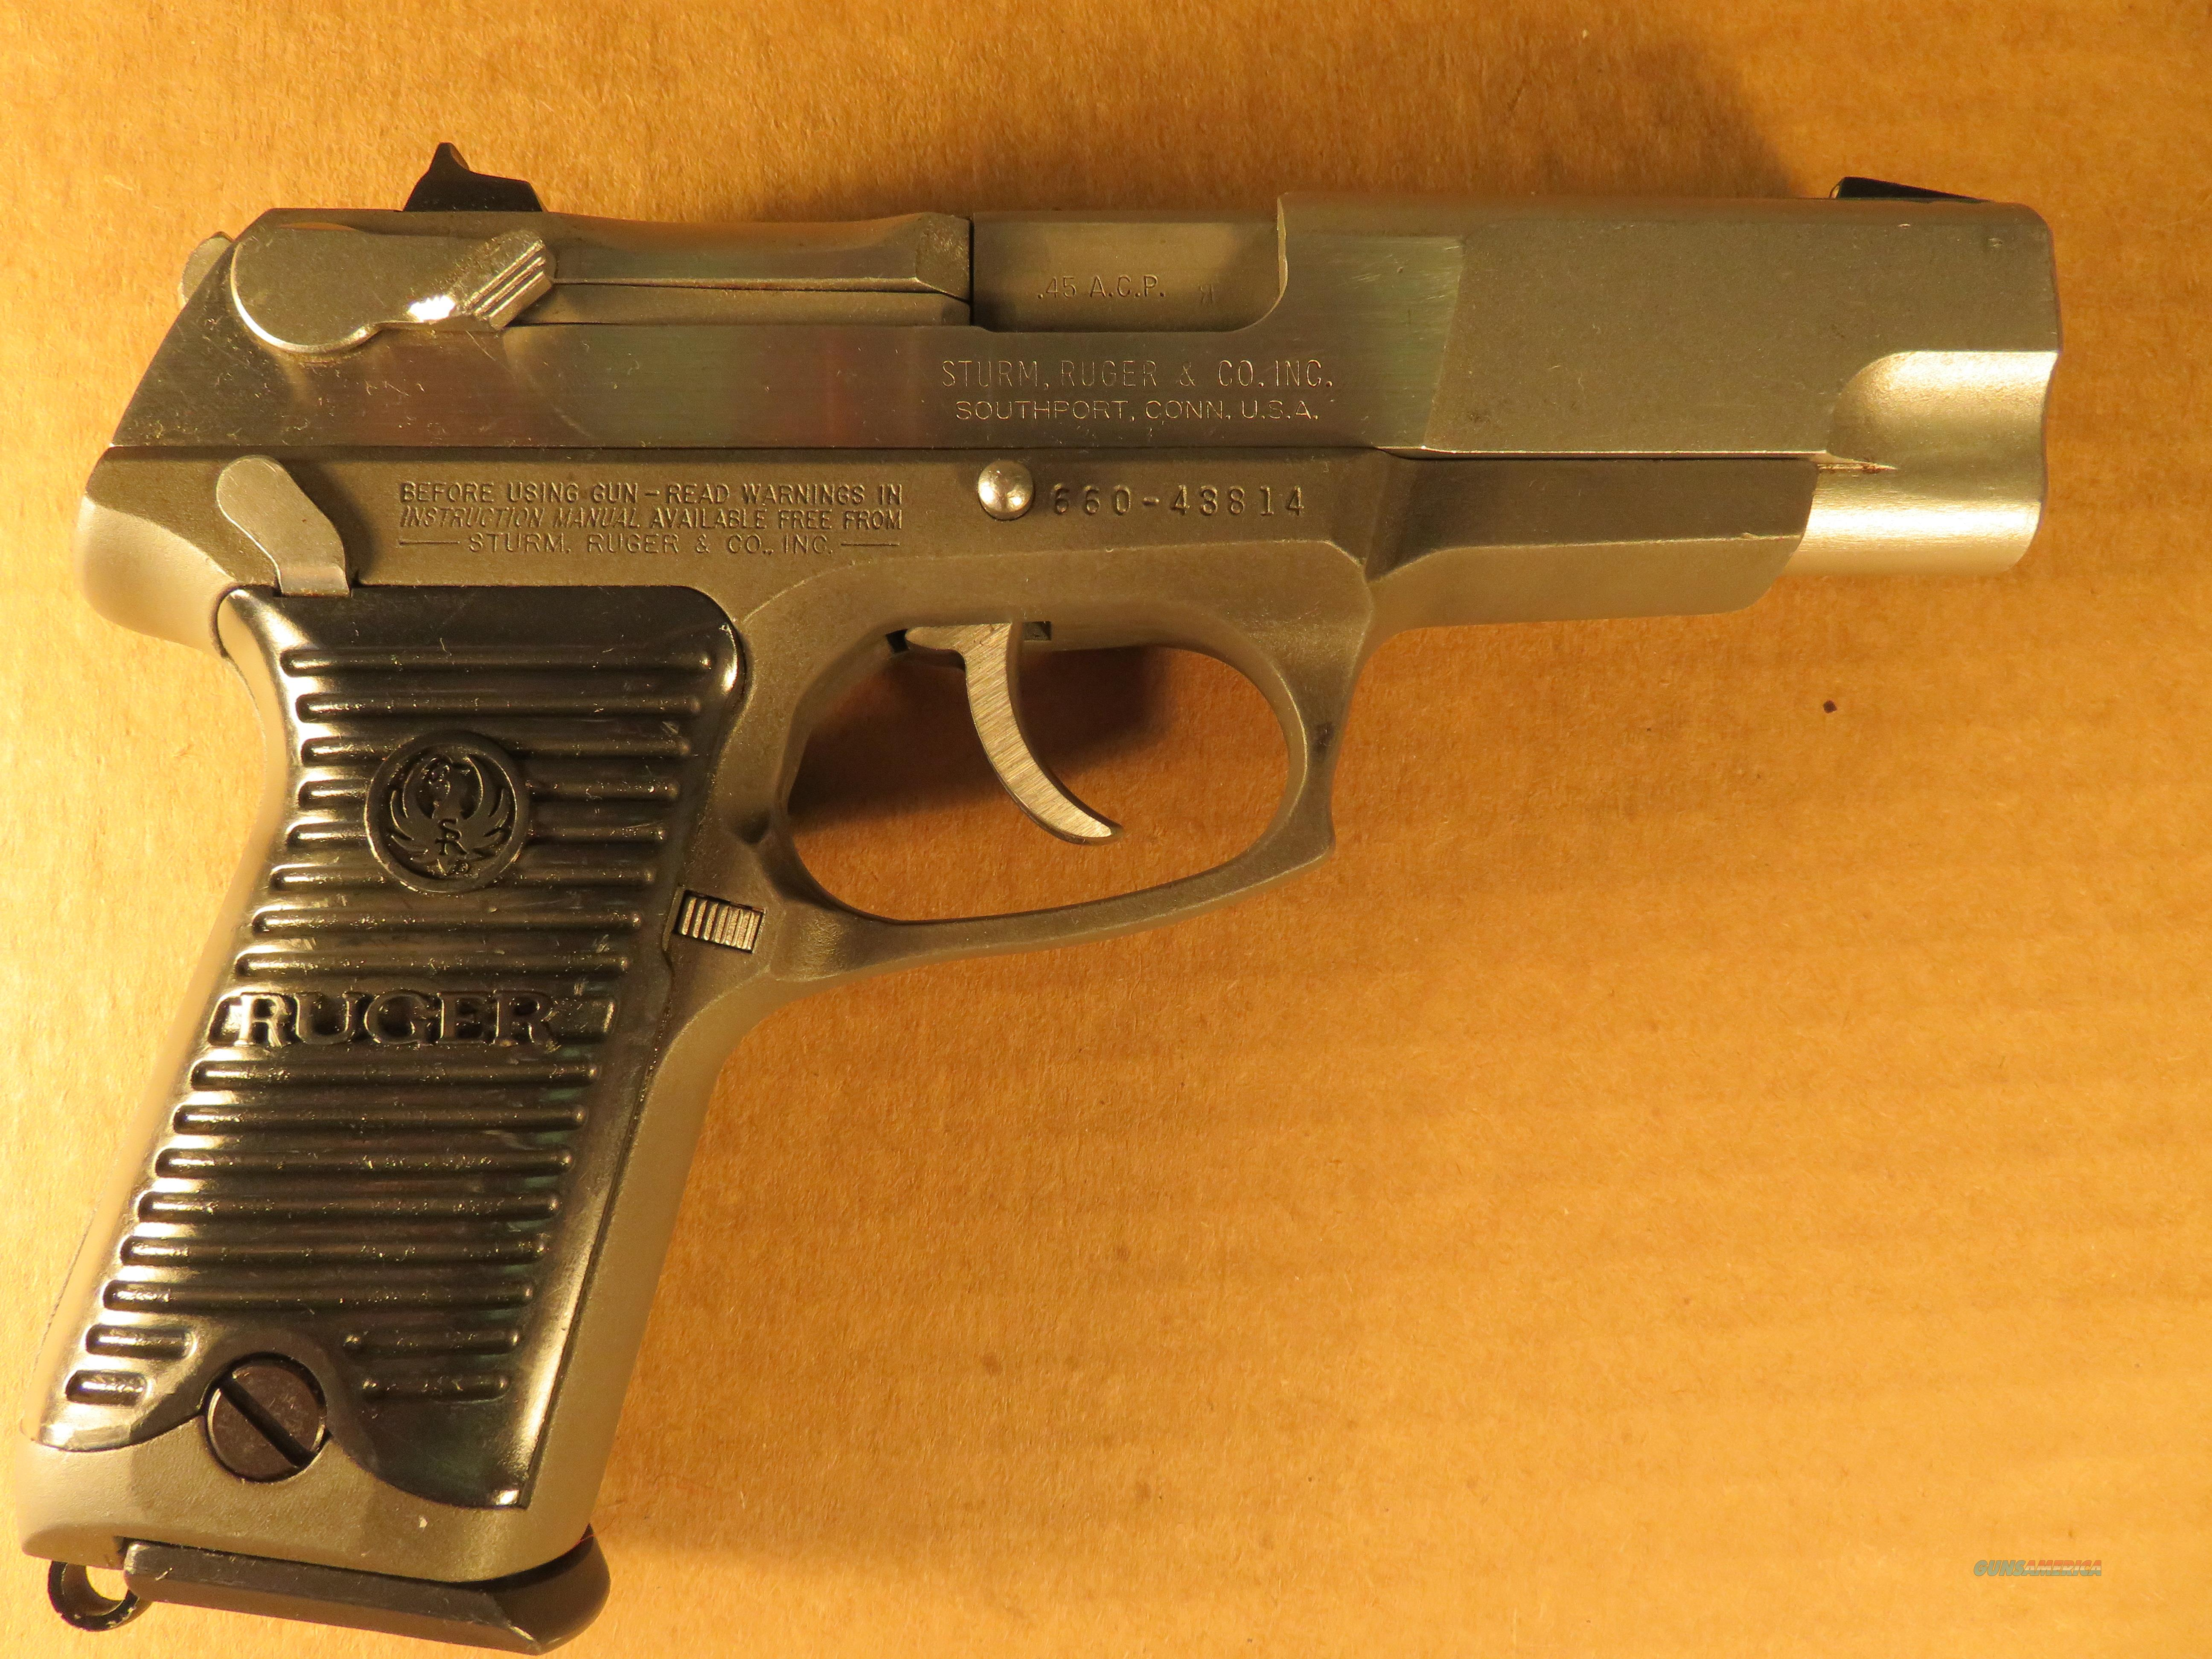 Ruger P-90- 45 acp. stainless   Guns > Pistols > Ruger Semi-Auto Pistols > P-Series